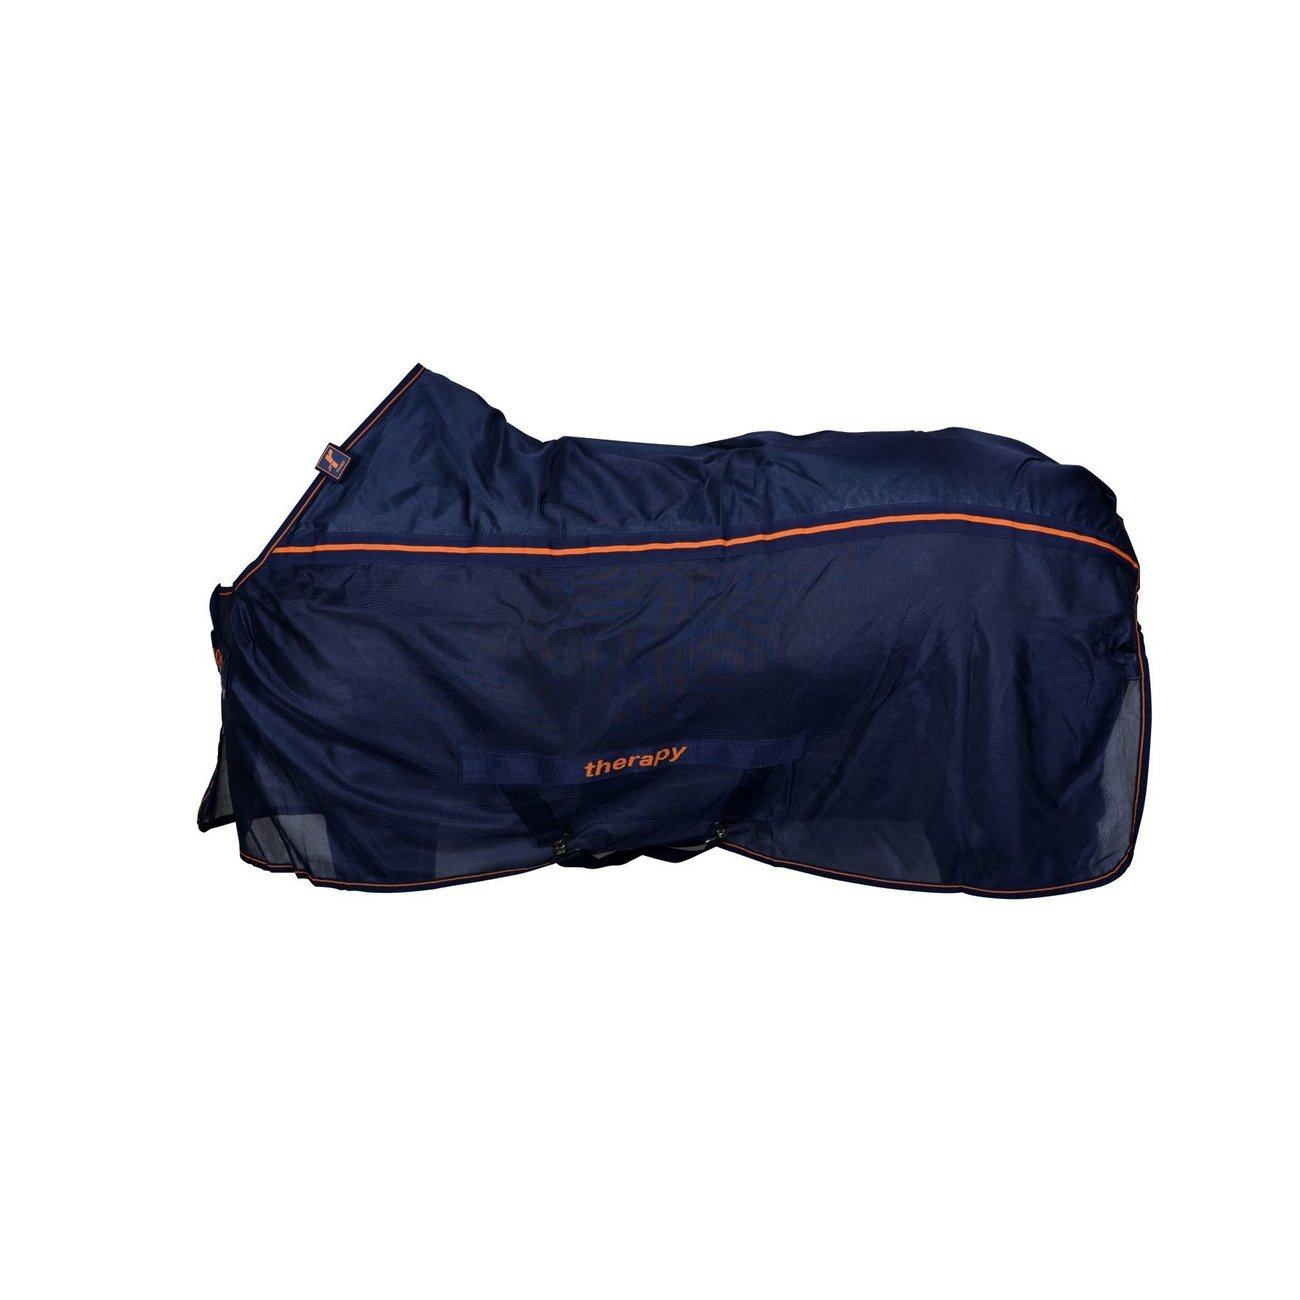 Bucas Recuptex Pferde Therapiedecke Light, Gr. 120 - Navy/ Orange